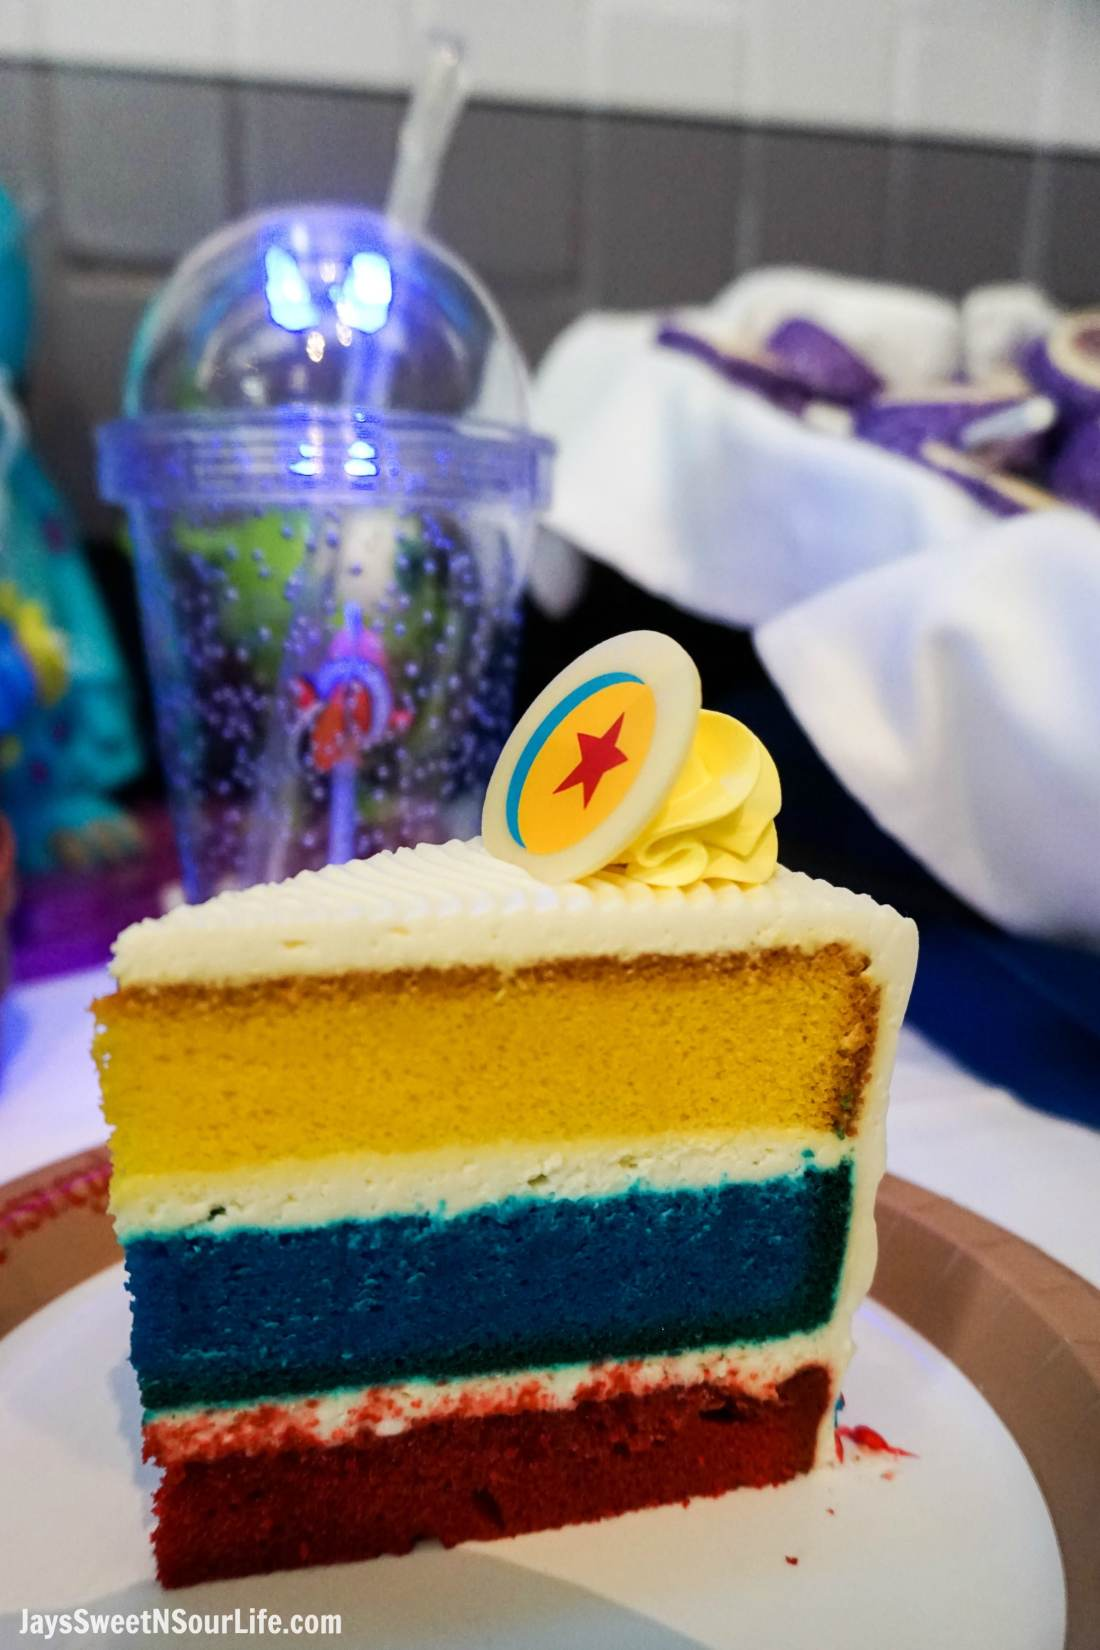 Pixar Fest Celebration Cake. Pixar Fest at Disneyland runs from April 13 through September 3rd.